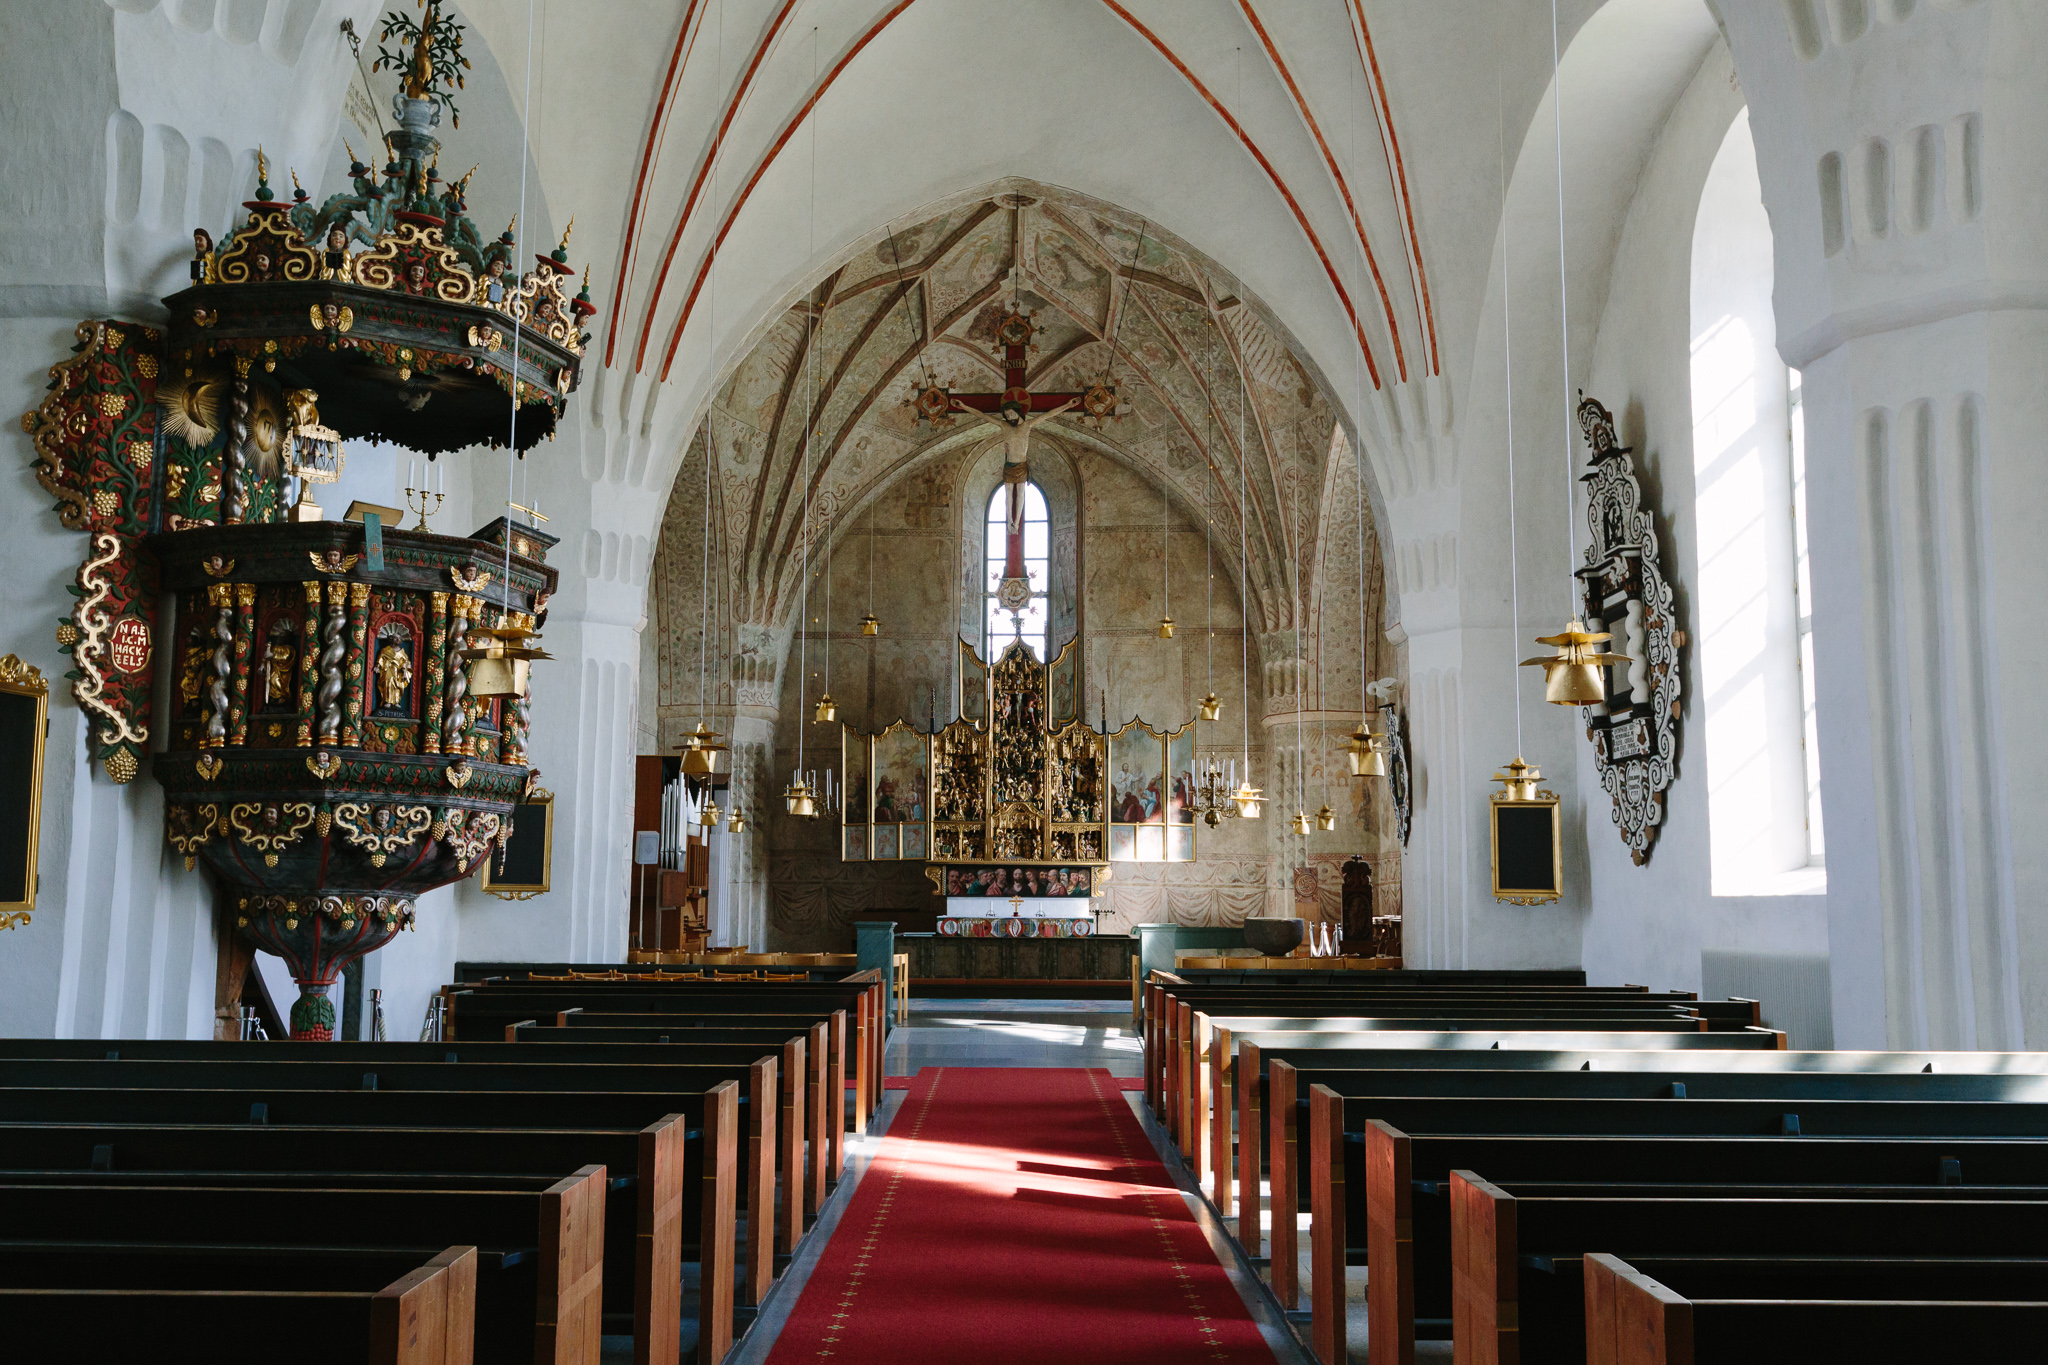 The church at Gammelstad, with elements of pre- and post-Reformation design.